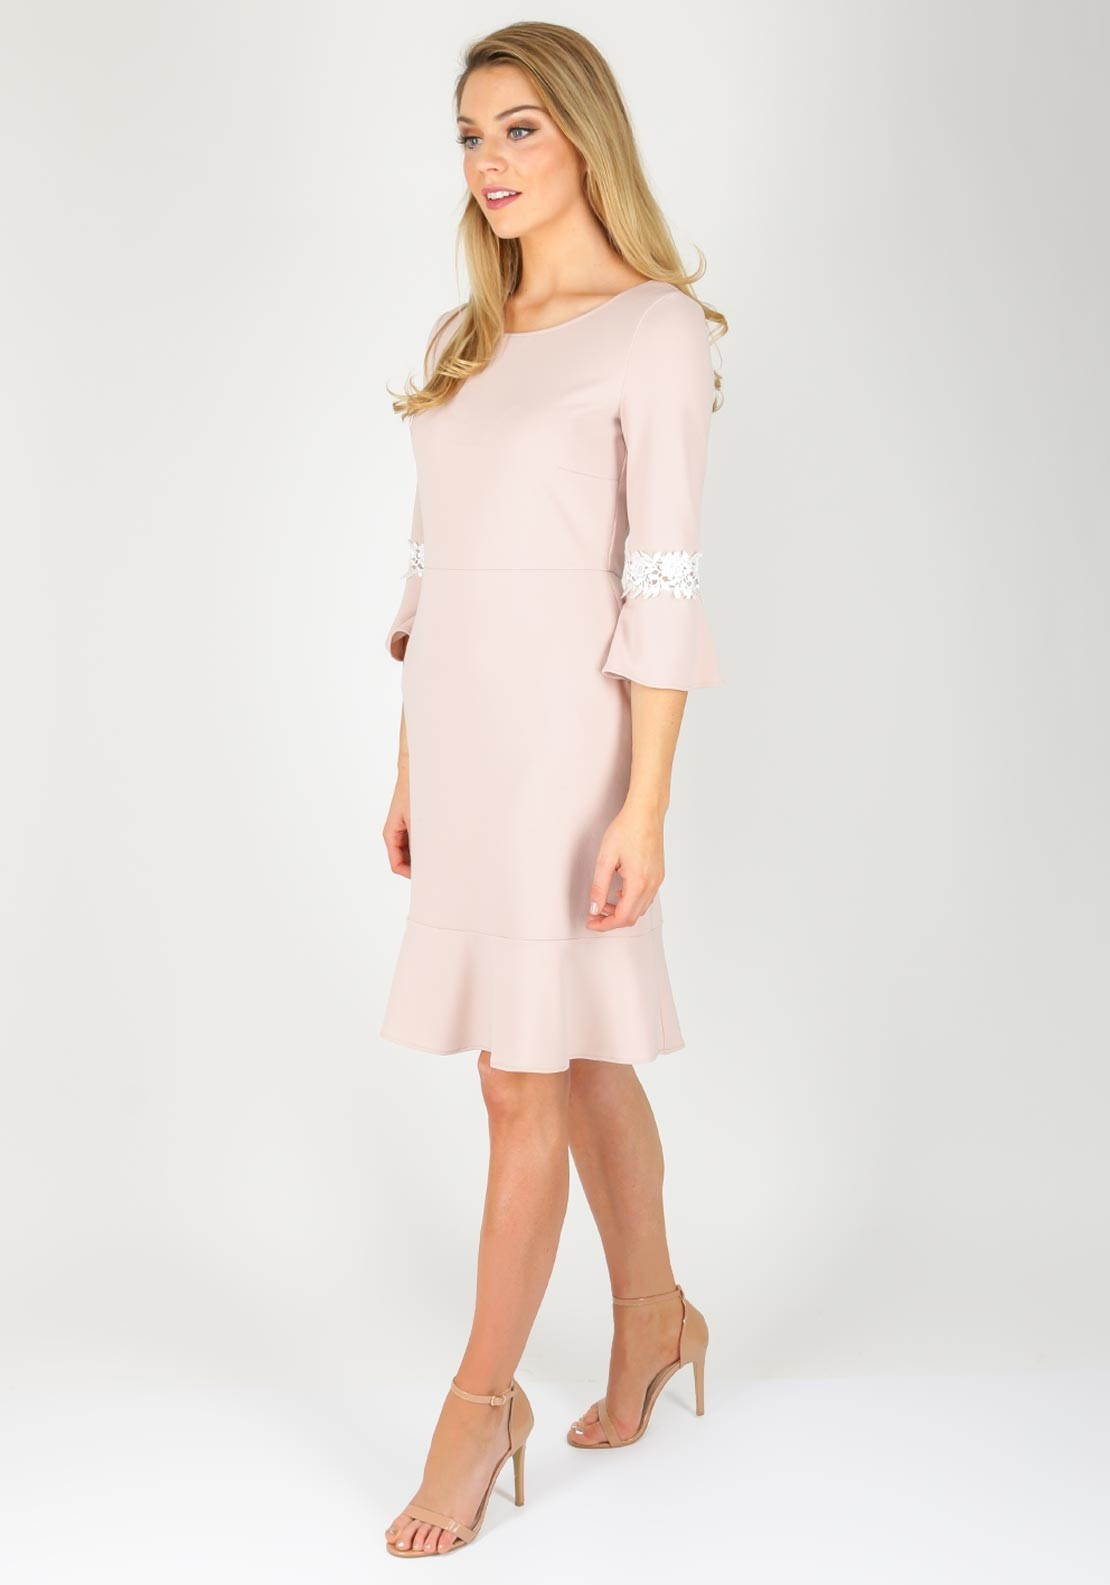 VERA MONT DRESSES – EXCLUSIVE FASHION FROM VERA MONT FOR THE LADY